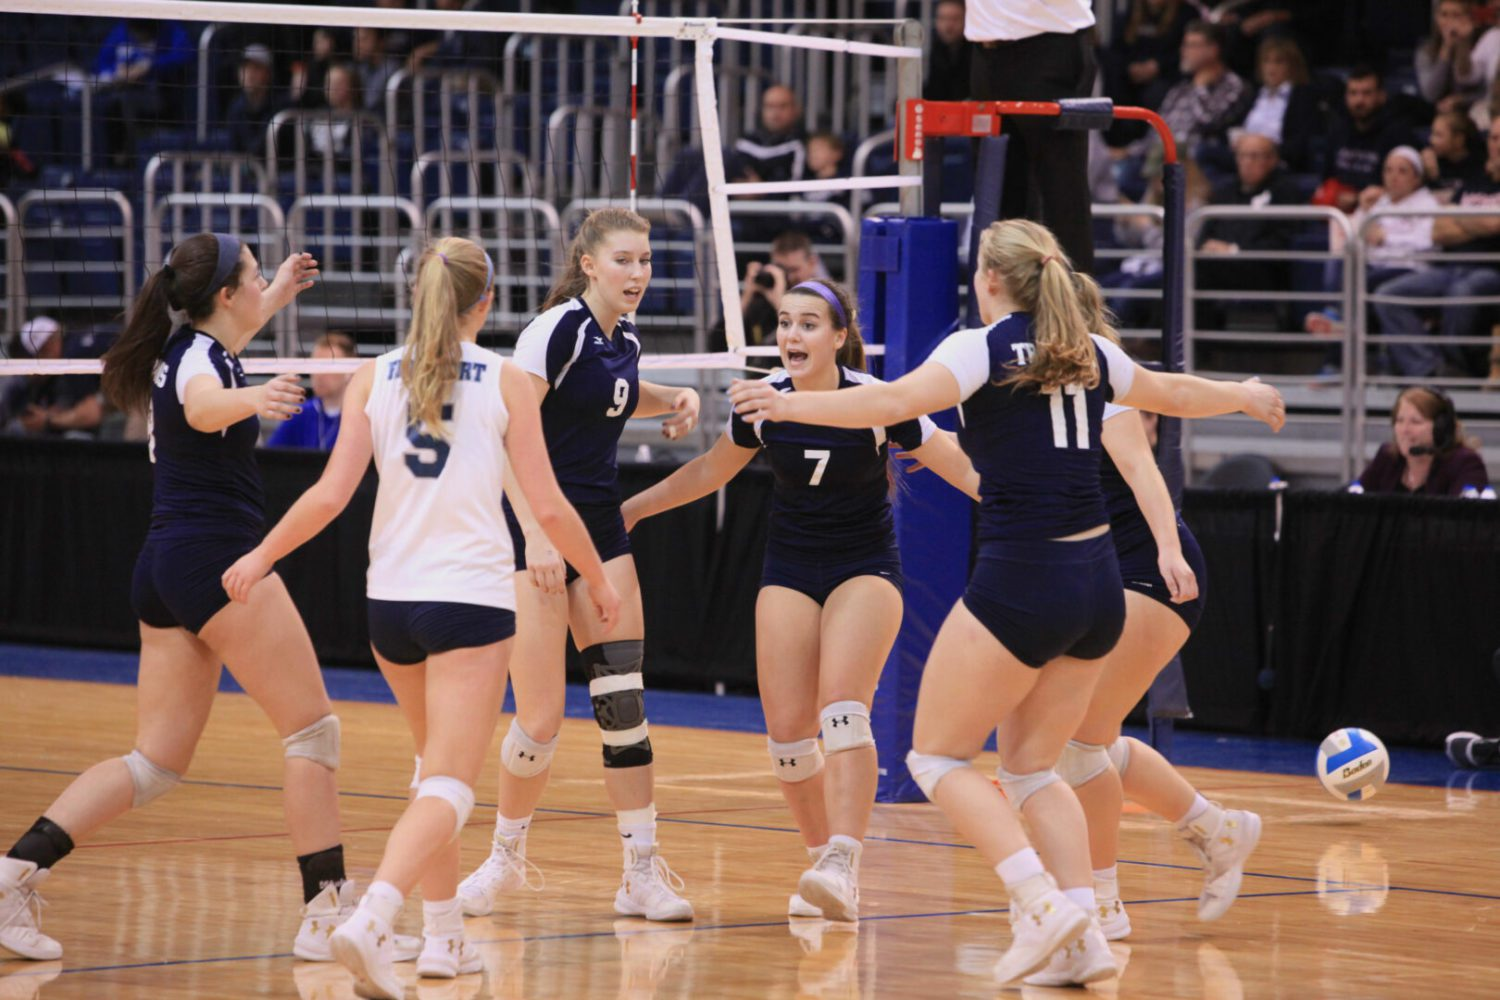 Fruitport volleyball team's tournament run ends with a tough loss in state semifinals